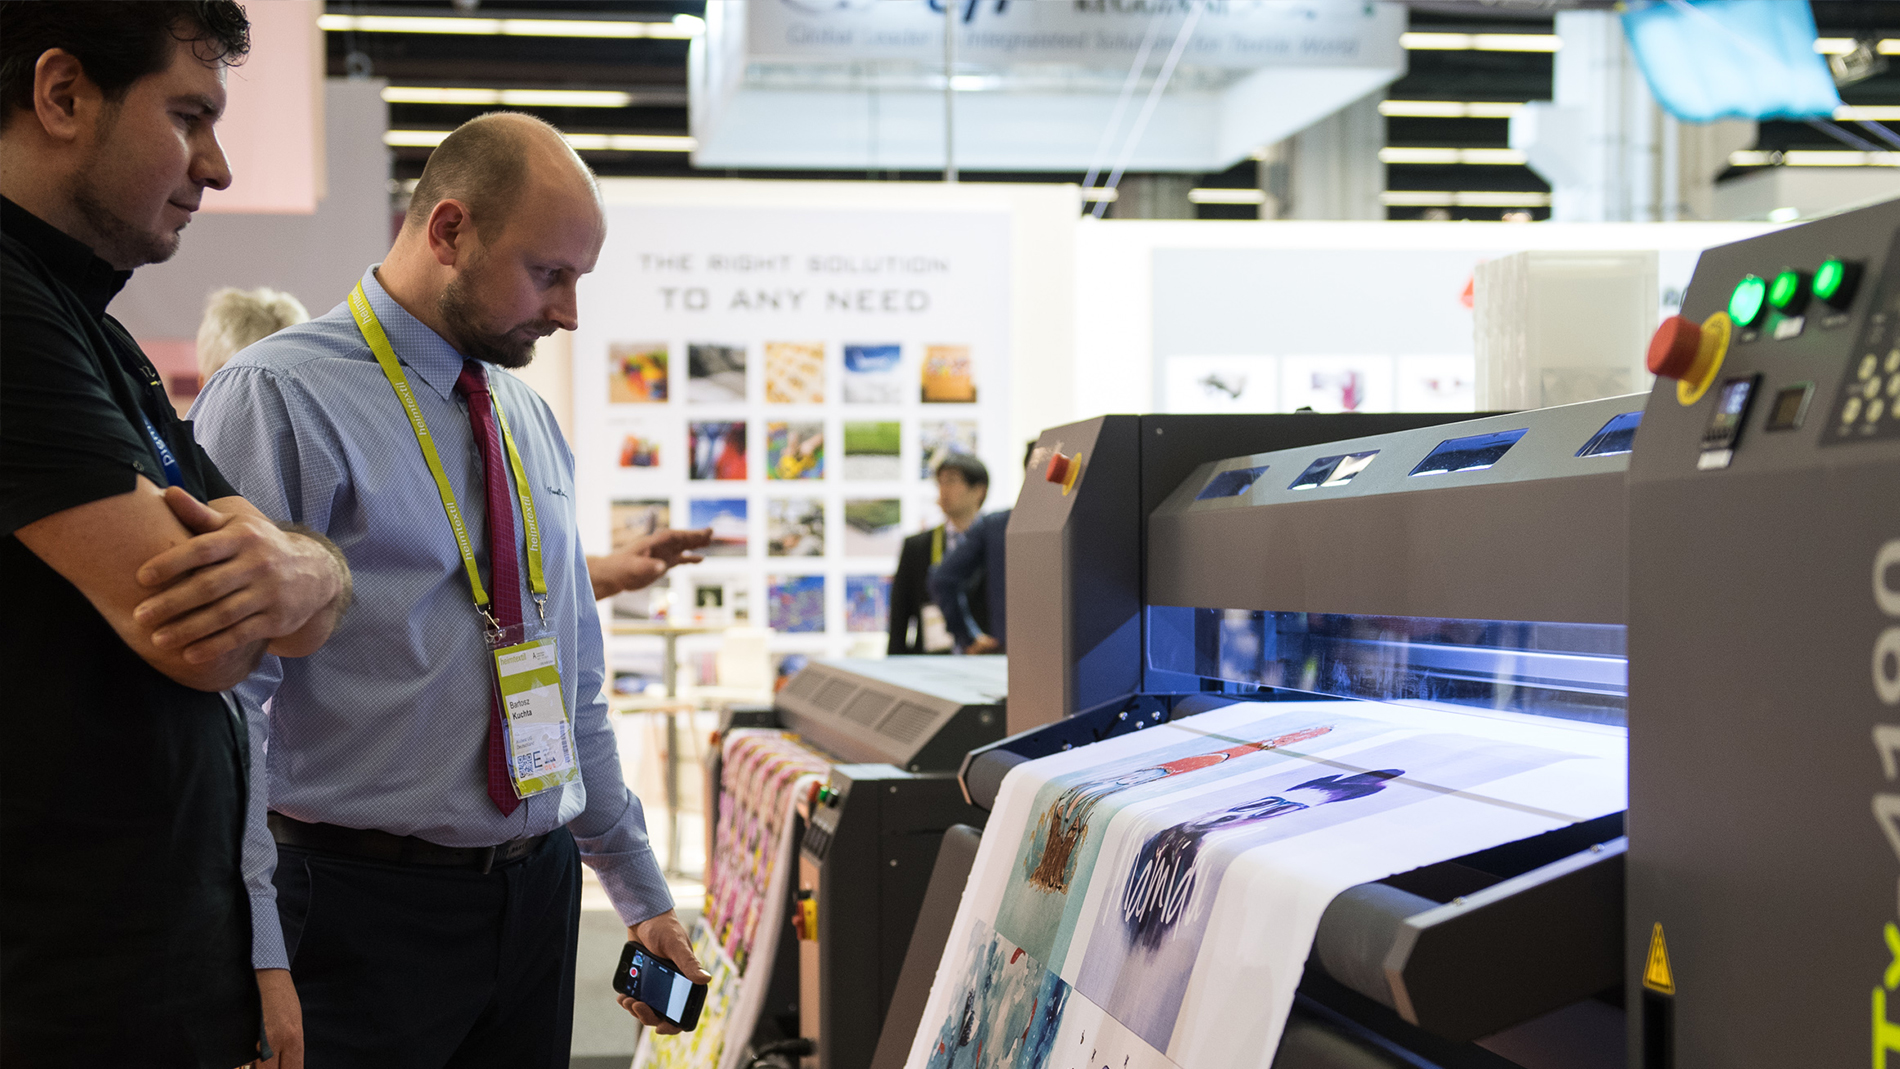 Heimtextil Trends, Textile Design, Digital Print Technology area at Heimtextil